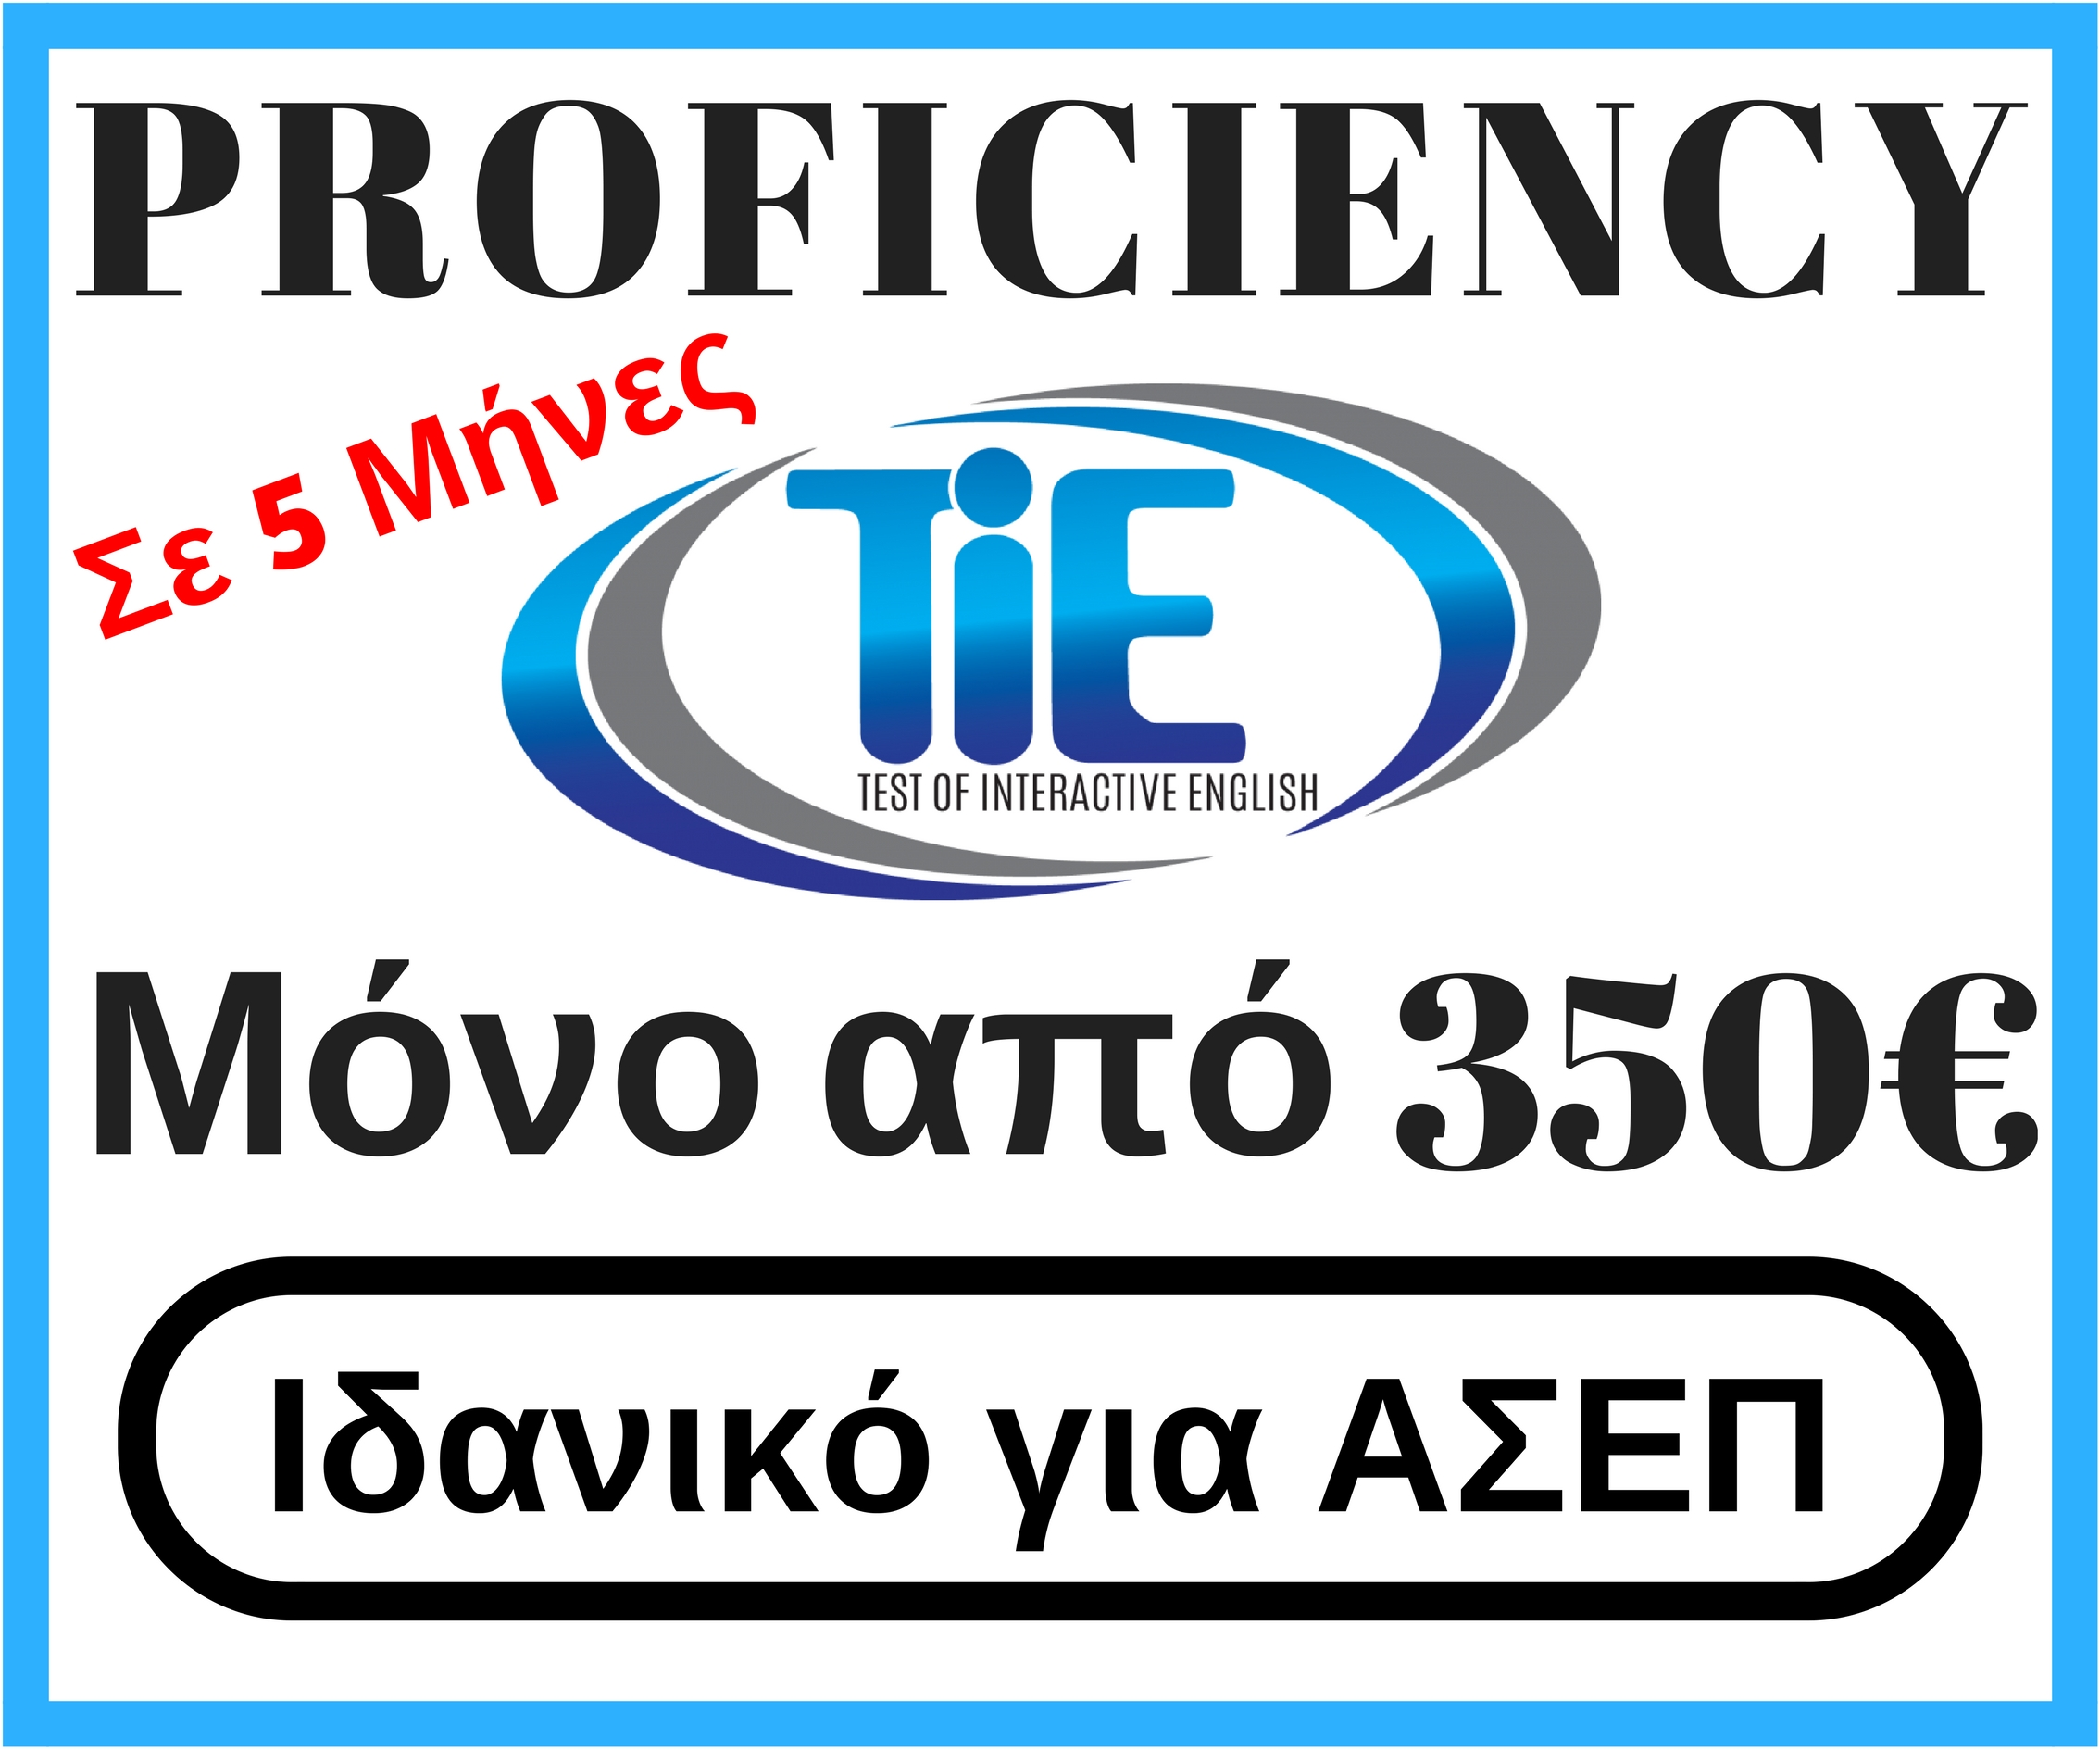 PROFICIENCY (C2)